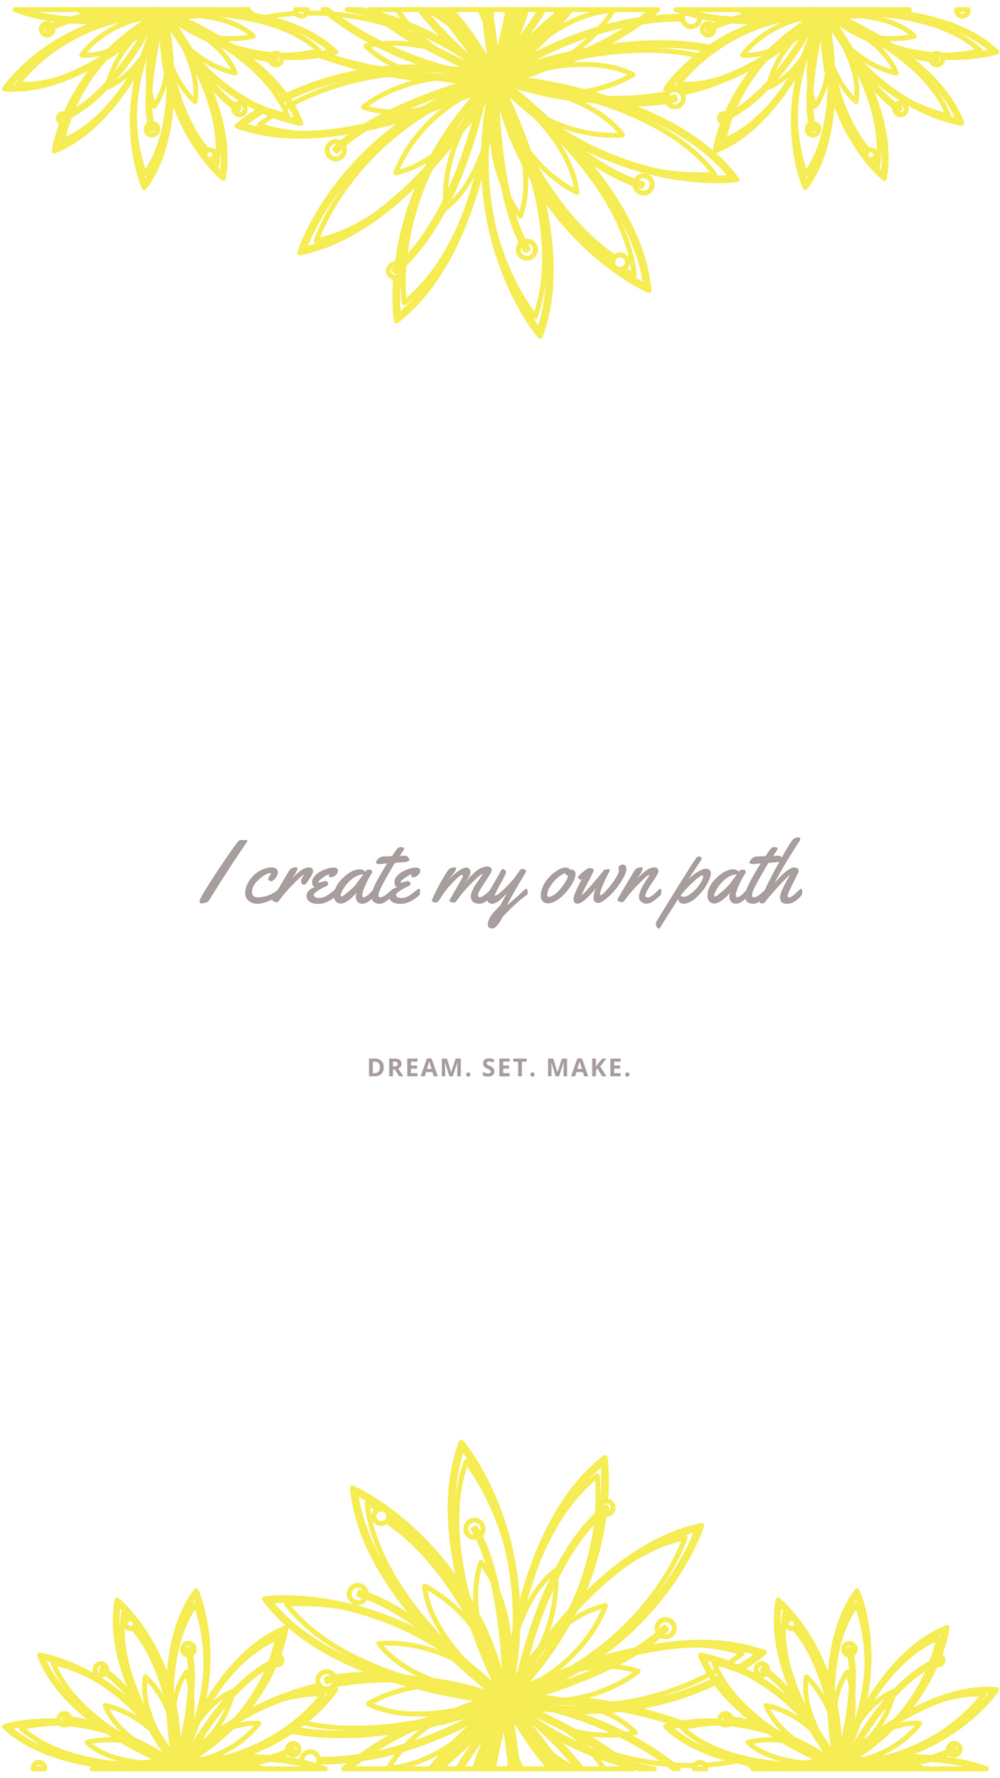 I create my own path.png